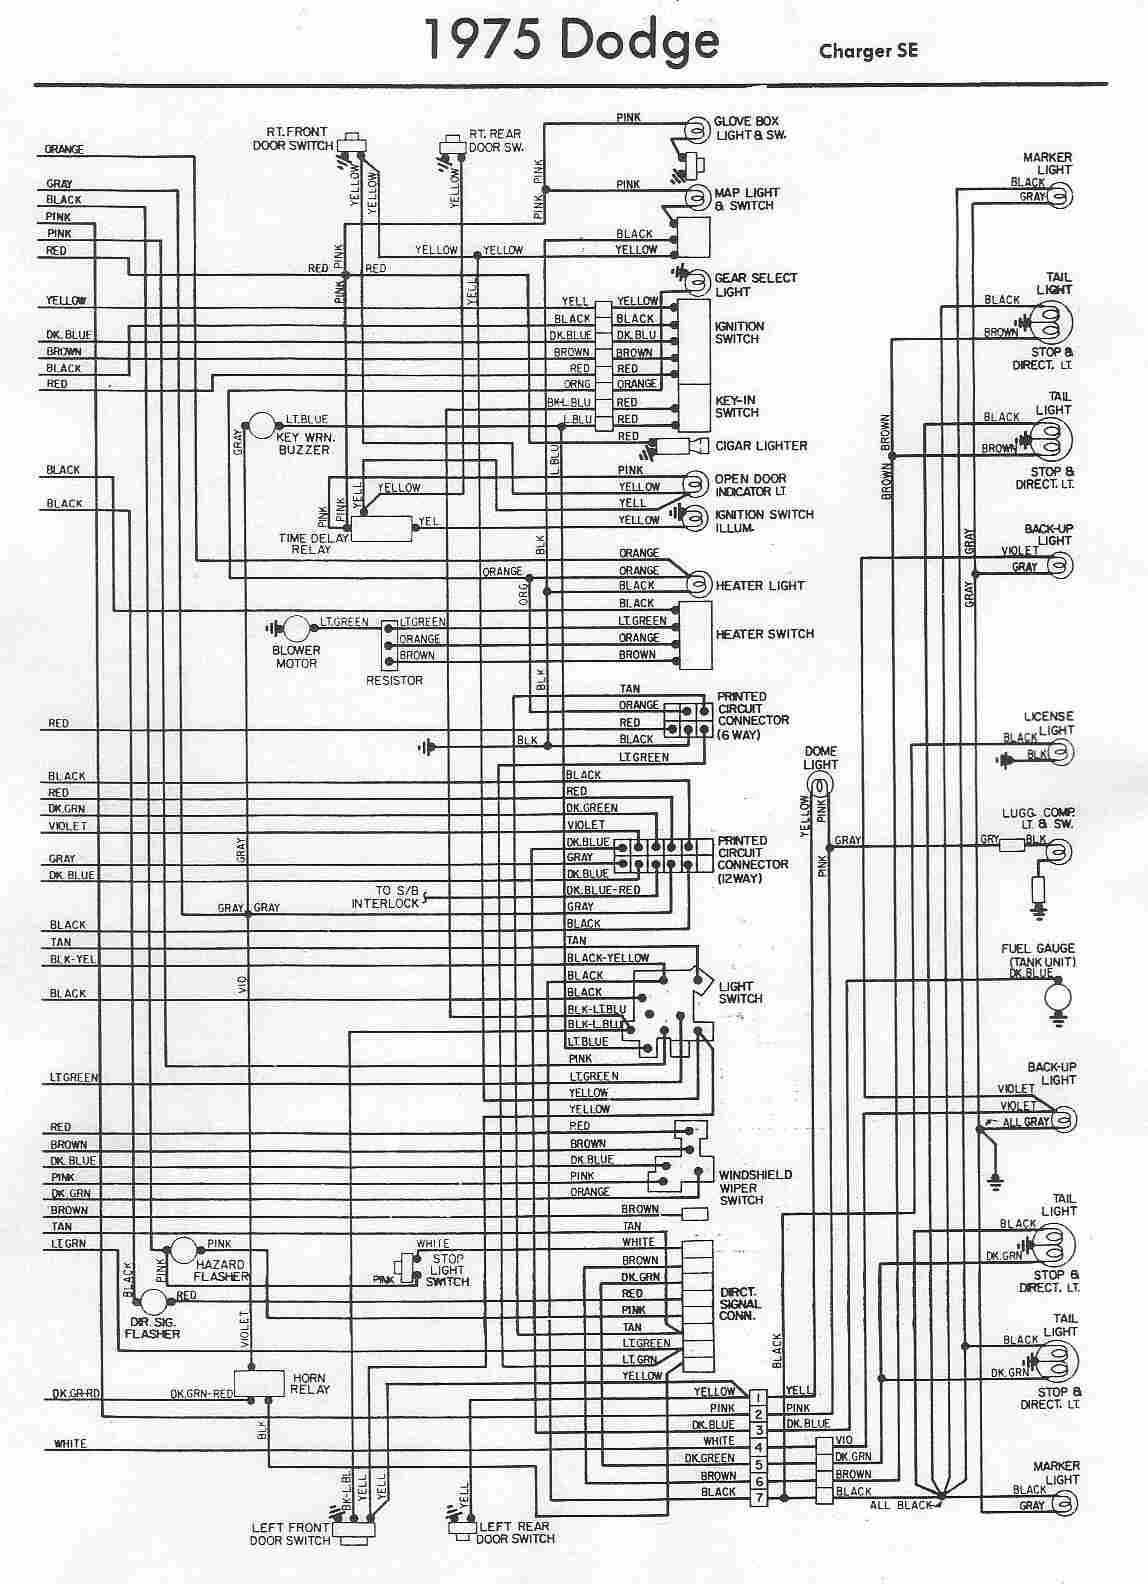 1973 dodge challenger wiring schematic 2009 dodge journey wiring diagramrh svlc us  [ 1148 x 1584 Pixel ]